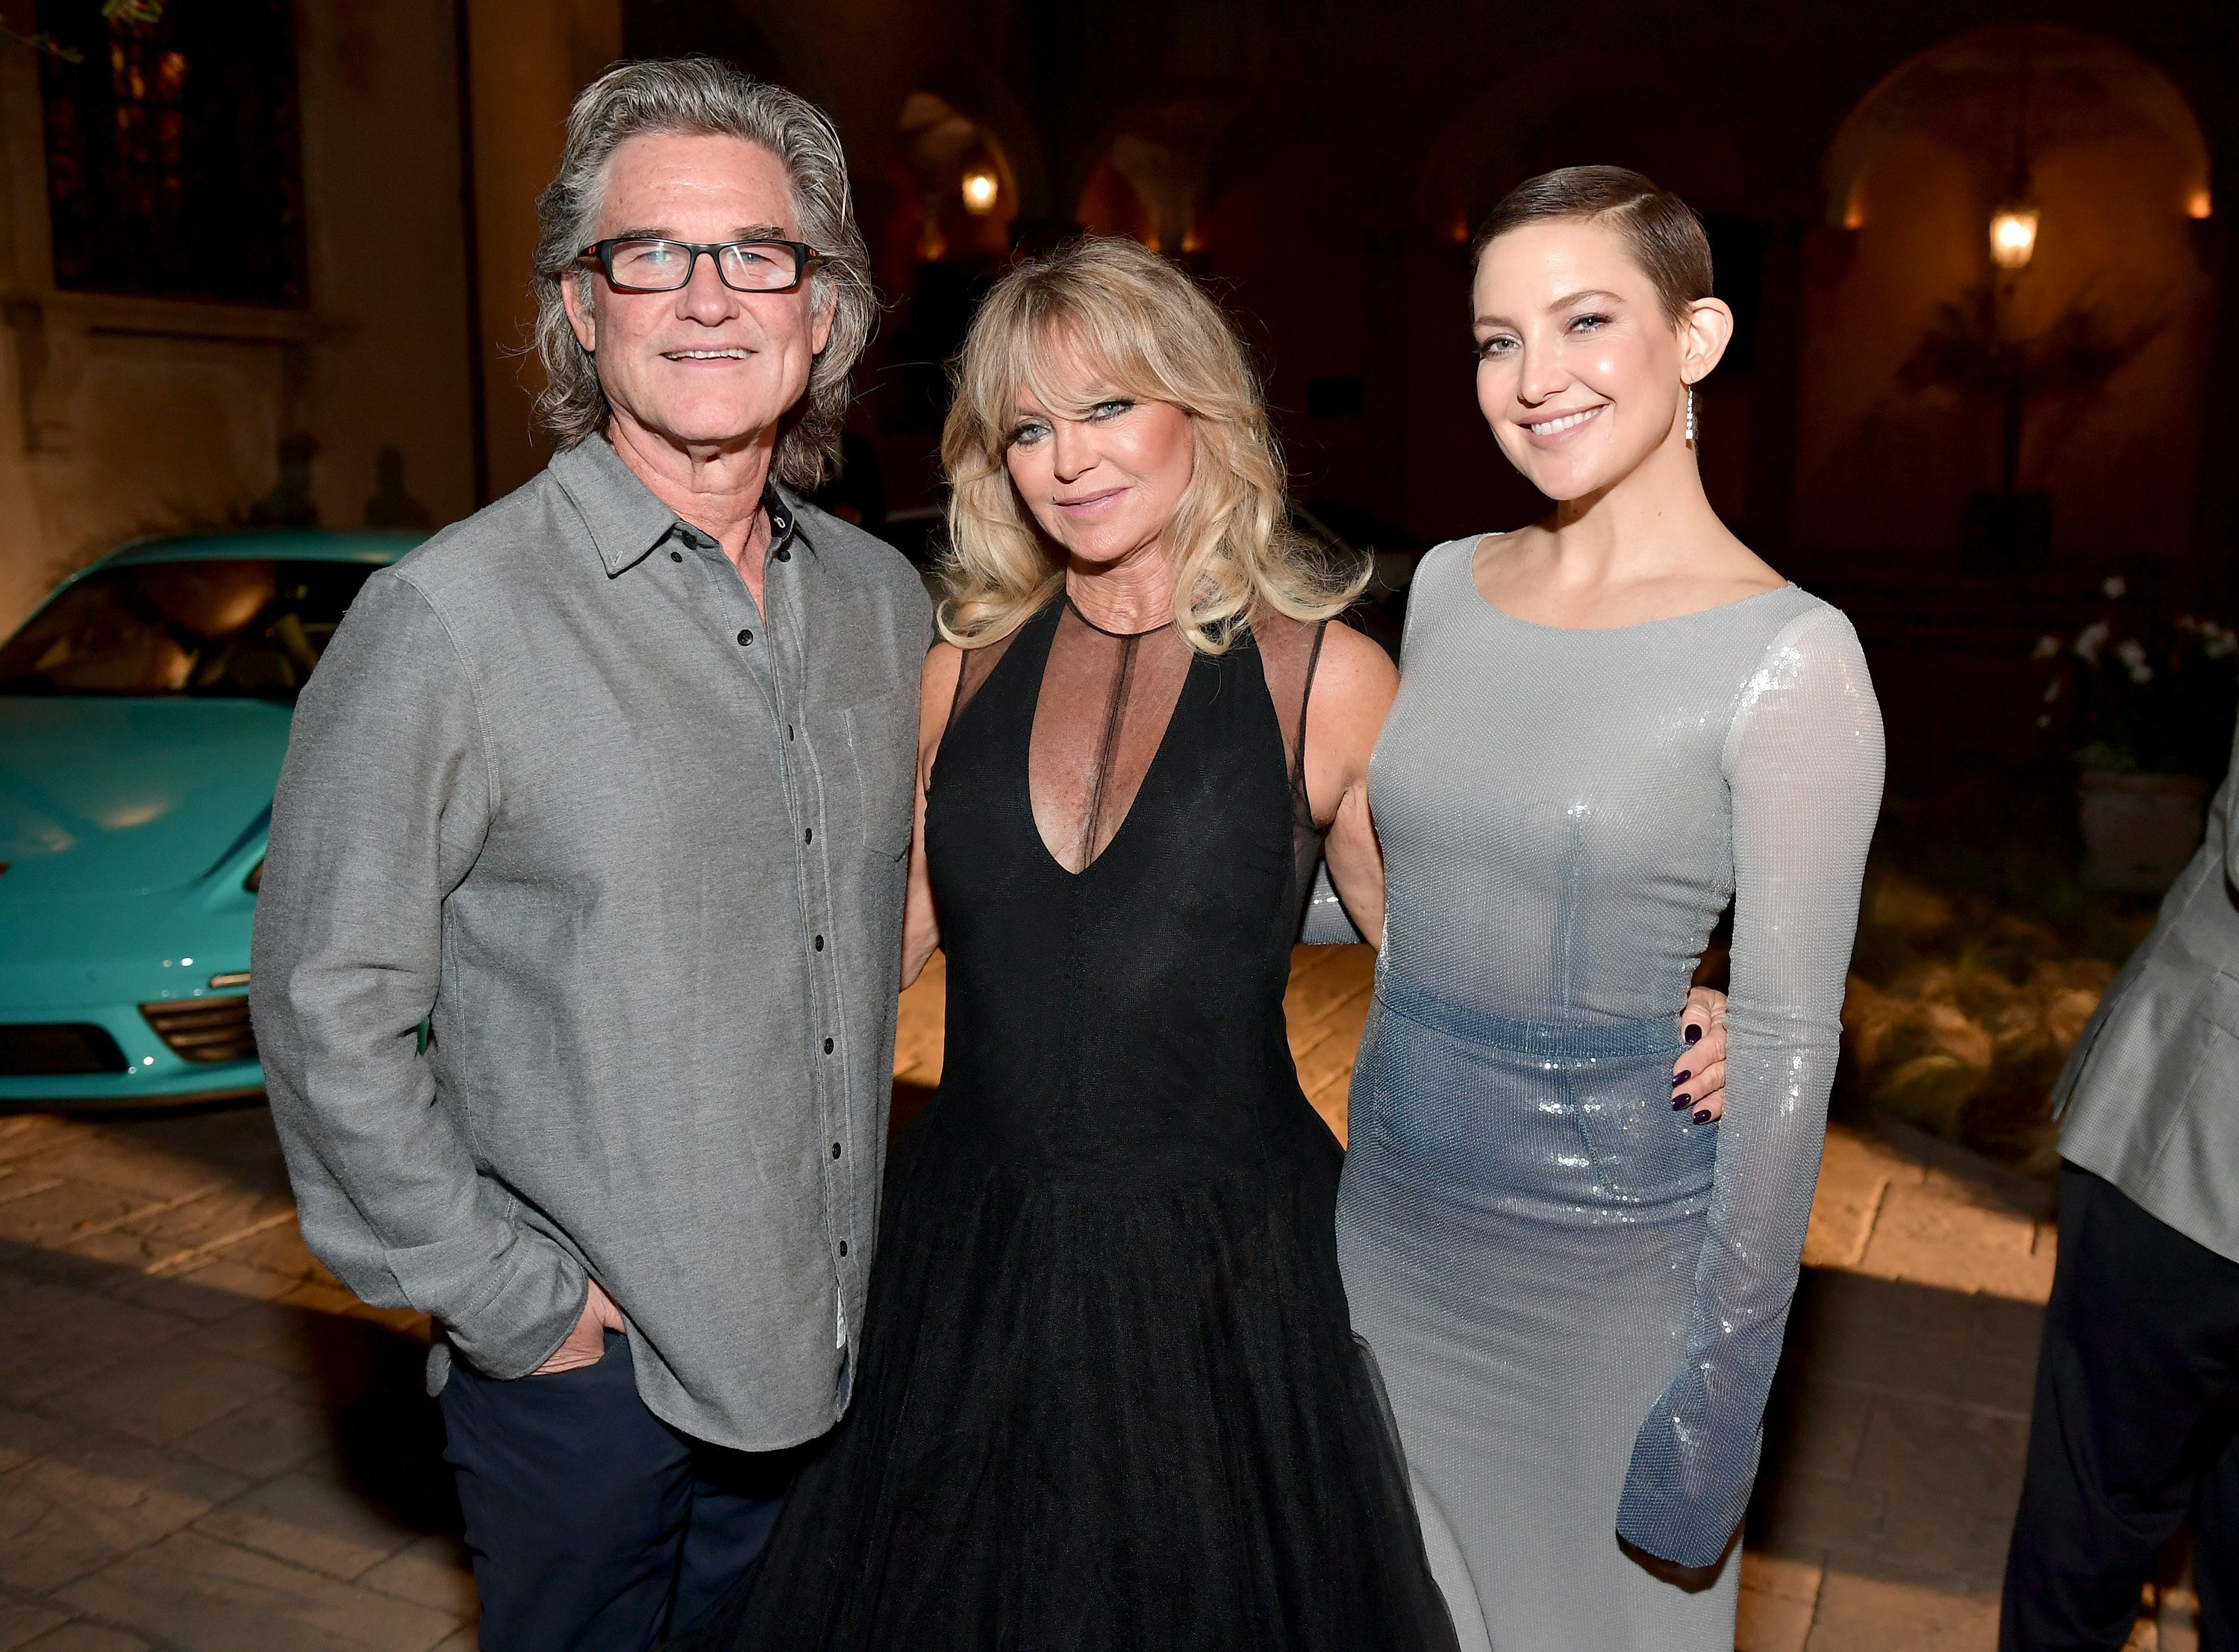 Kurt Russell, Goldie Hawn, and Kate Hudson. | Source: Getty Images